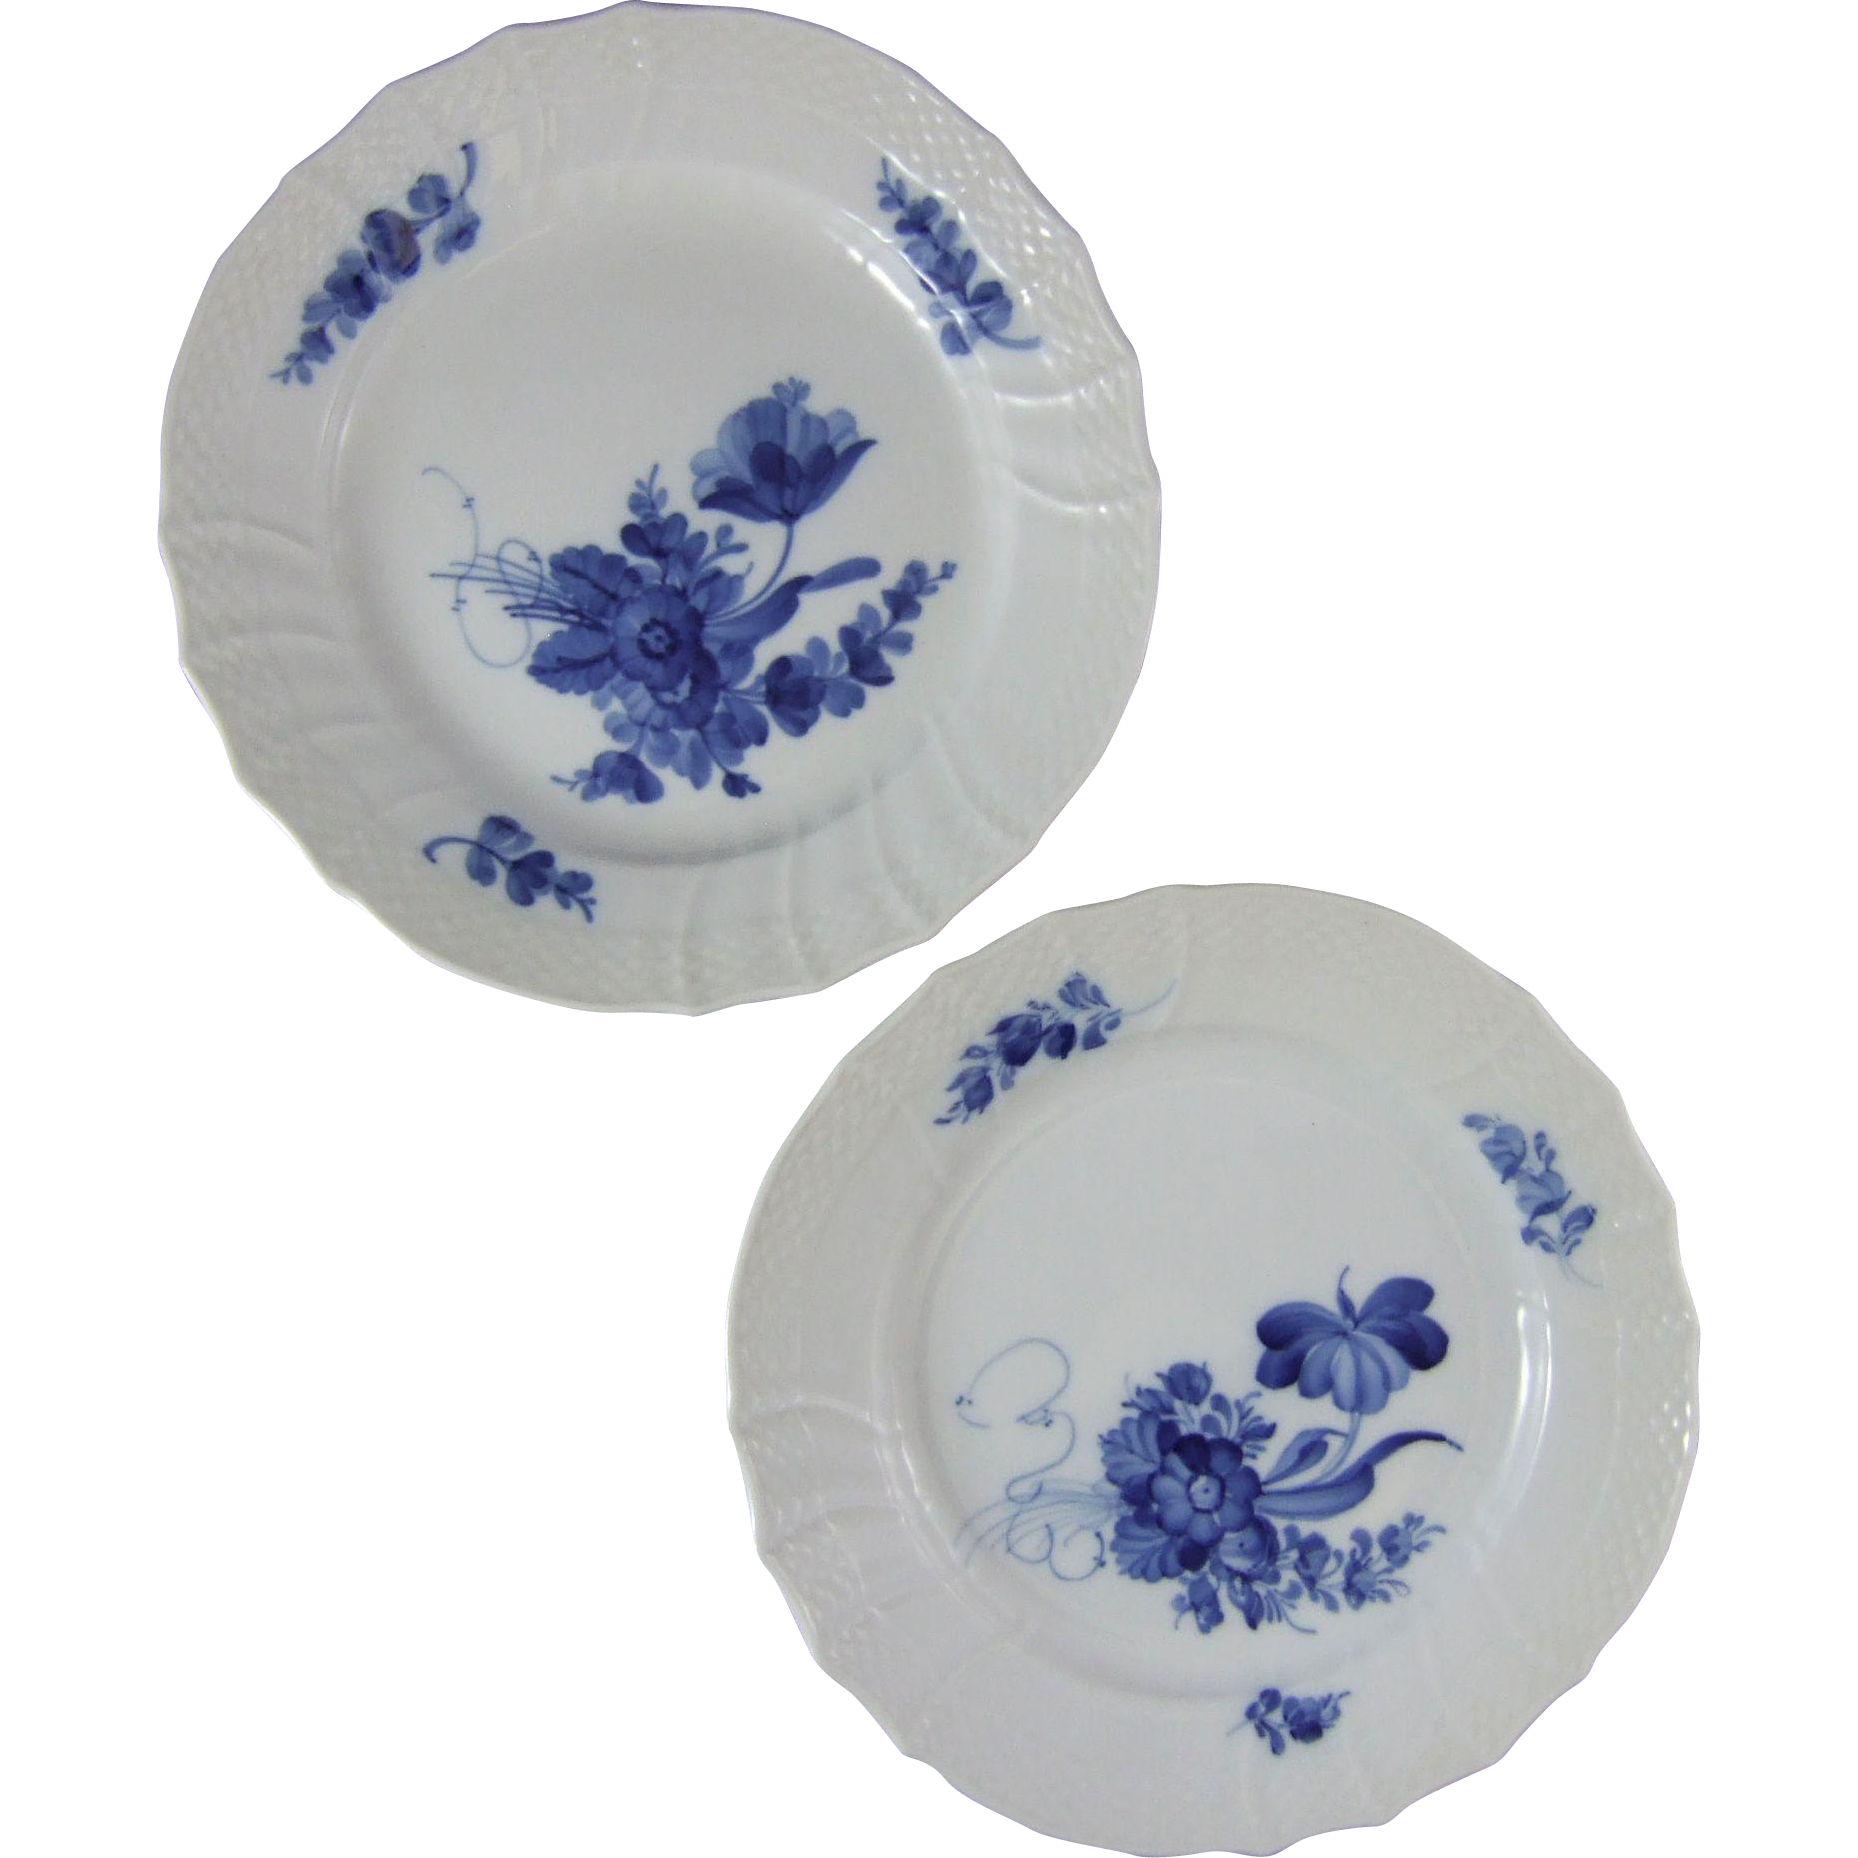 "Royal Copenhagen Porcelain Denmark Blue Flowers Curved 8.66"" Plate 1 106 621 Set of 2"